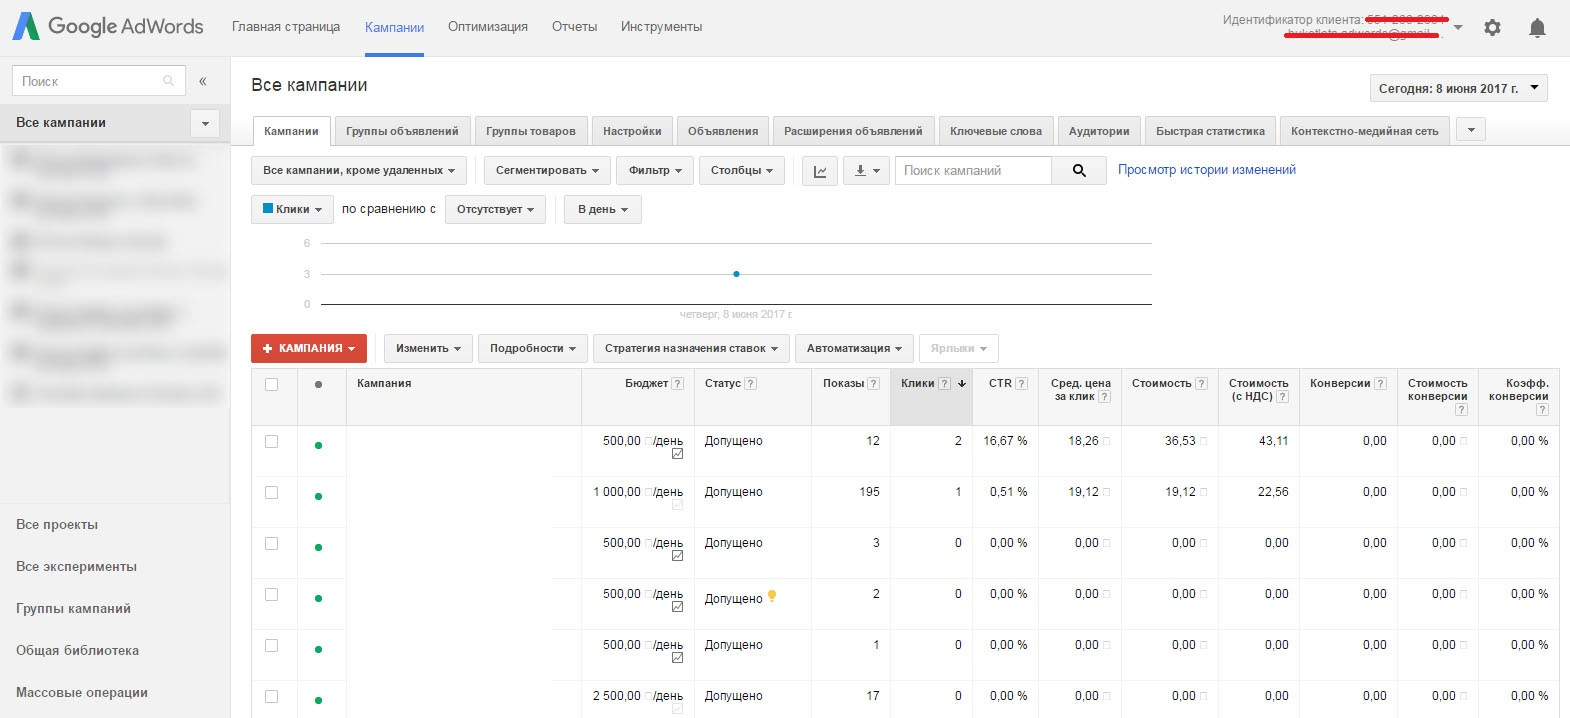 Кампании Google AdWords